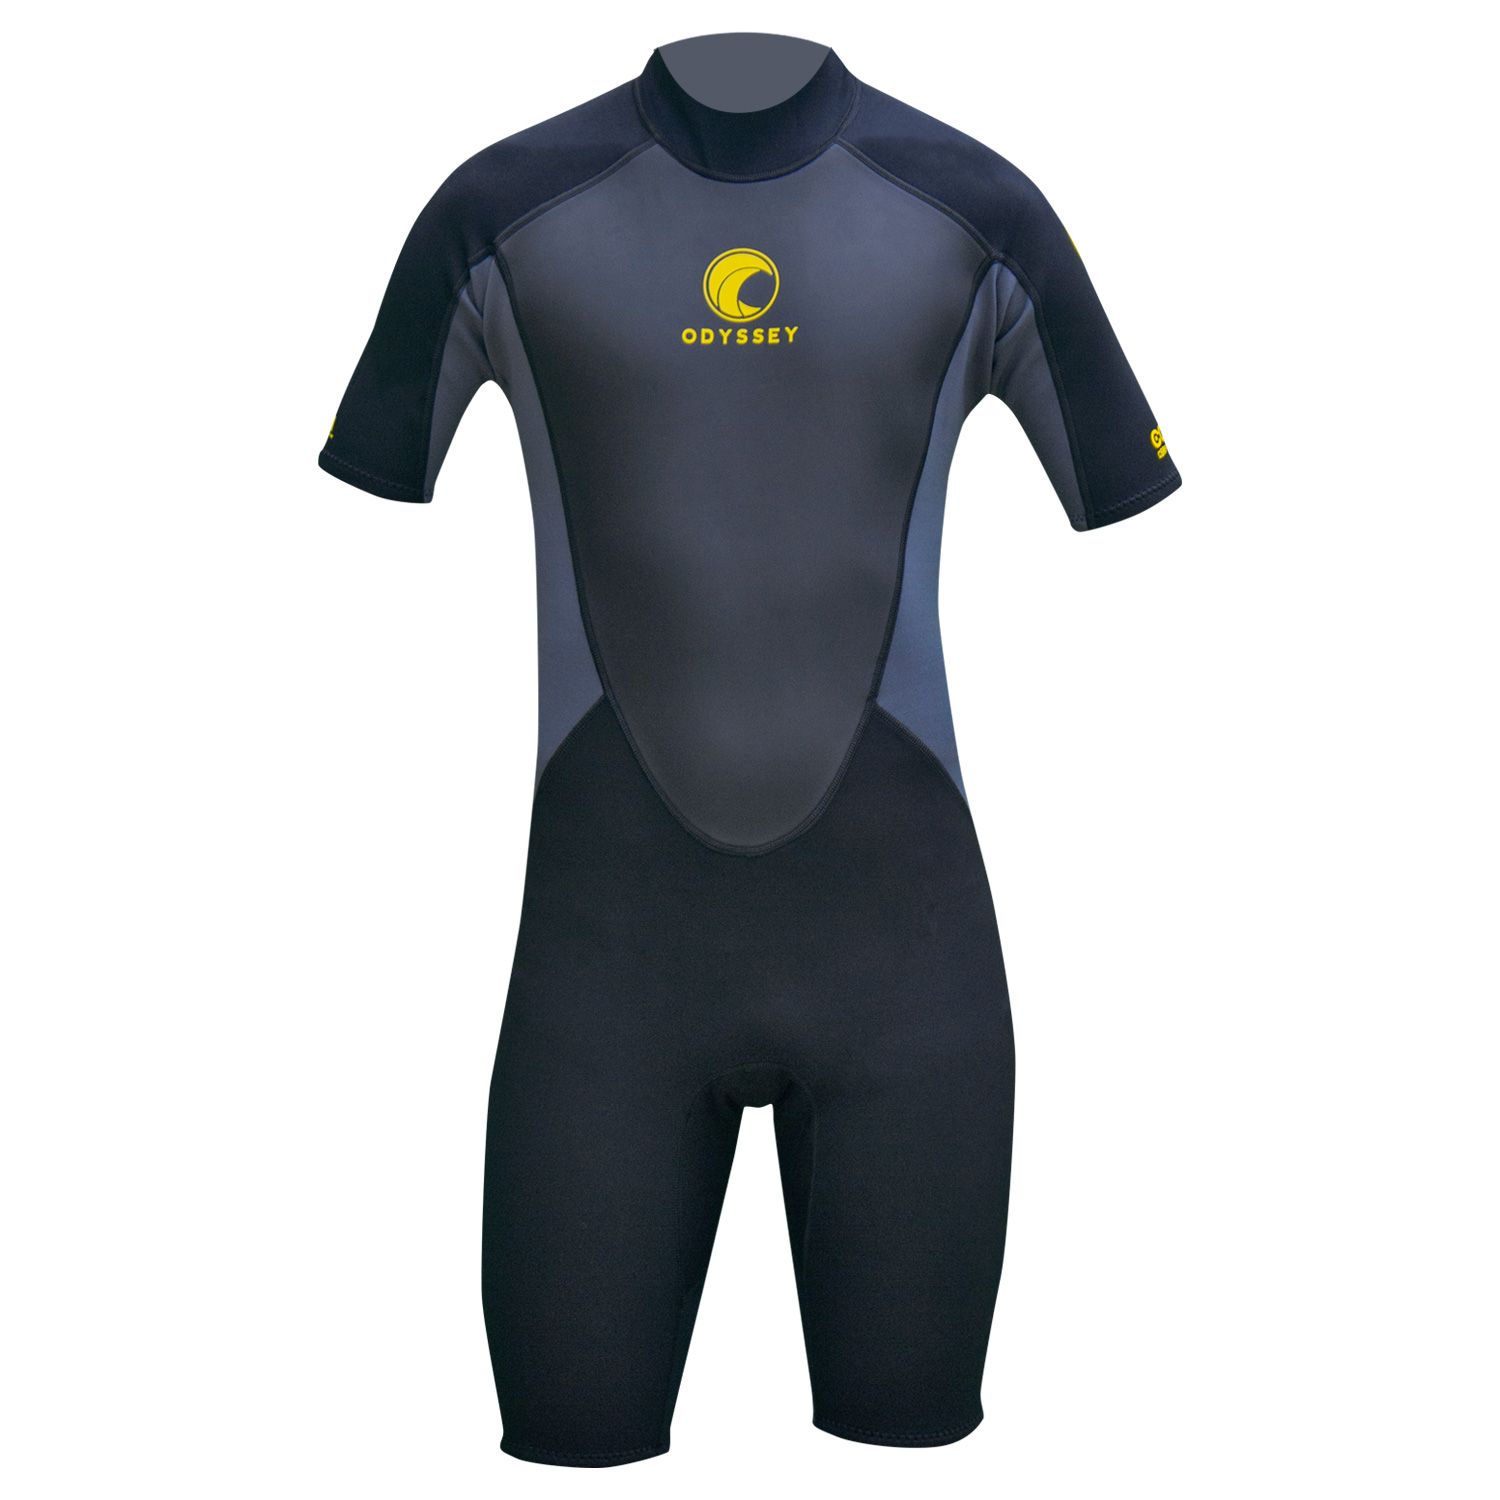 Odyssey-Core-3-2mm-Mens-Shorty-Wetsuit-Surf-Swim-Kayak-Shortie-Wet-Suit-S-XXL thumbnail 28